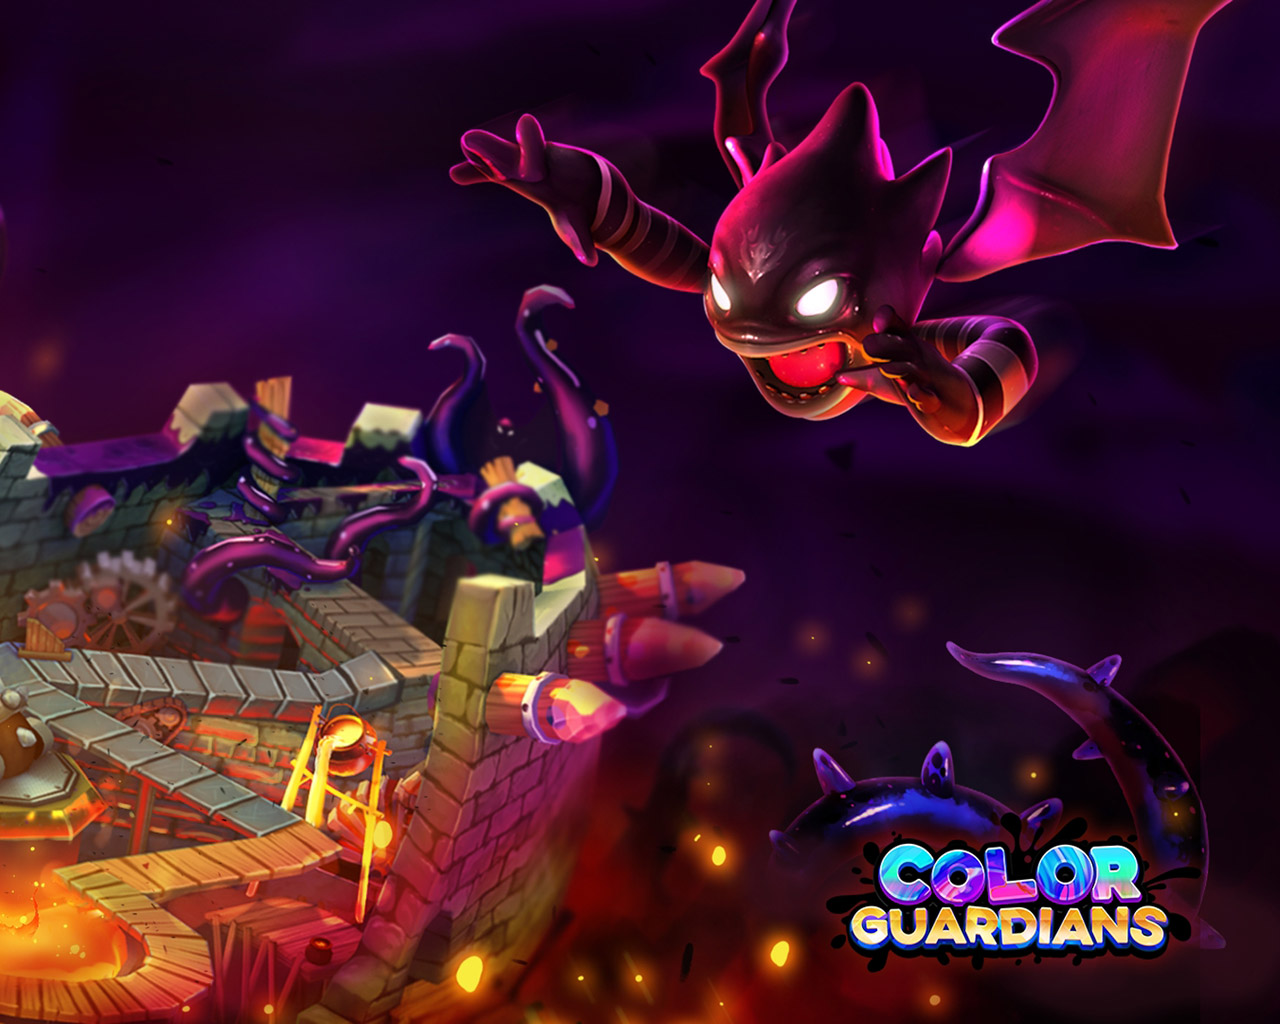 Free Color Guardians Wallpaper in 1280x1024